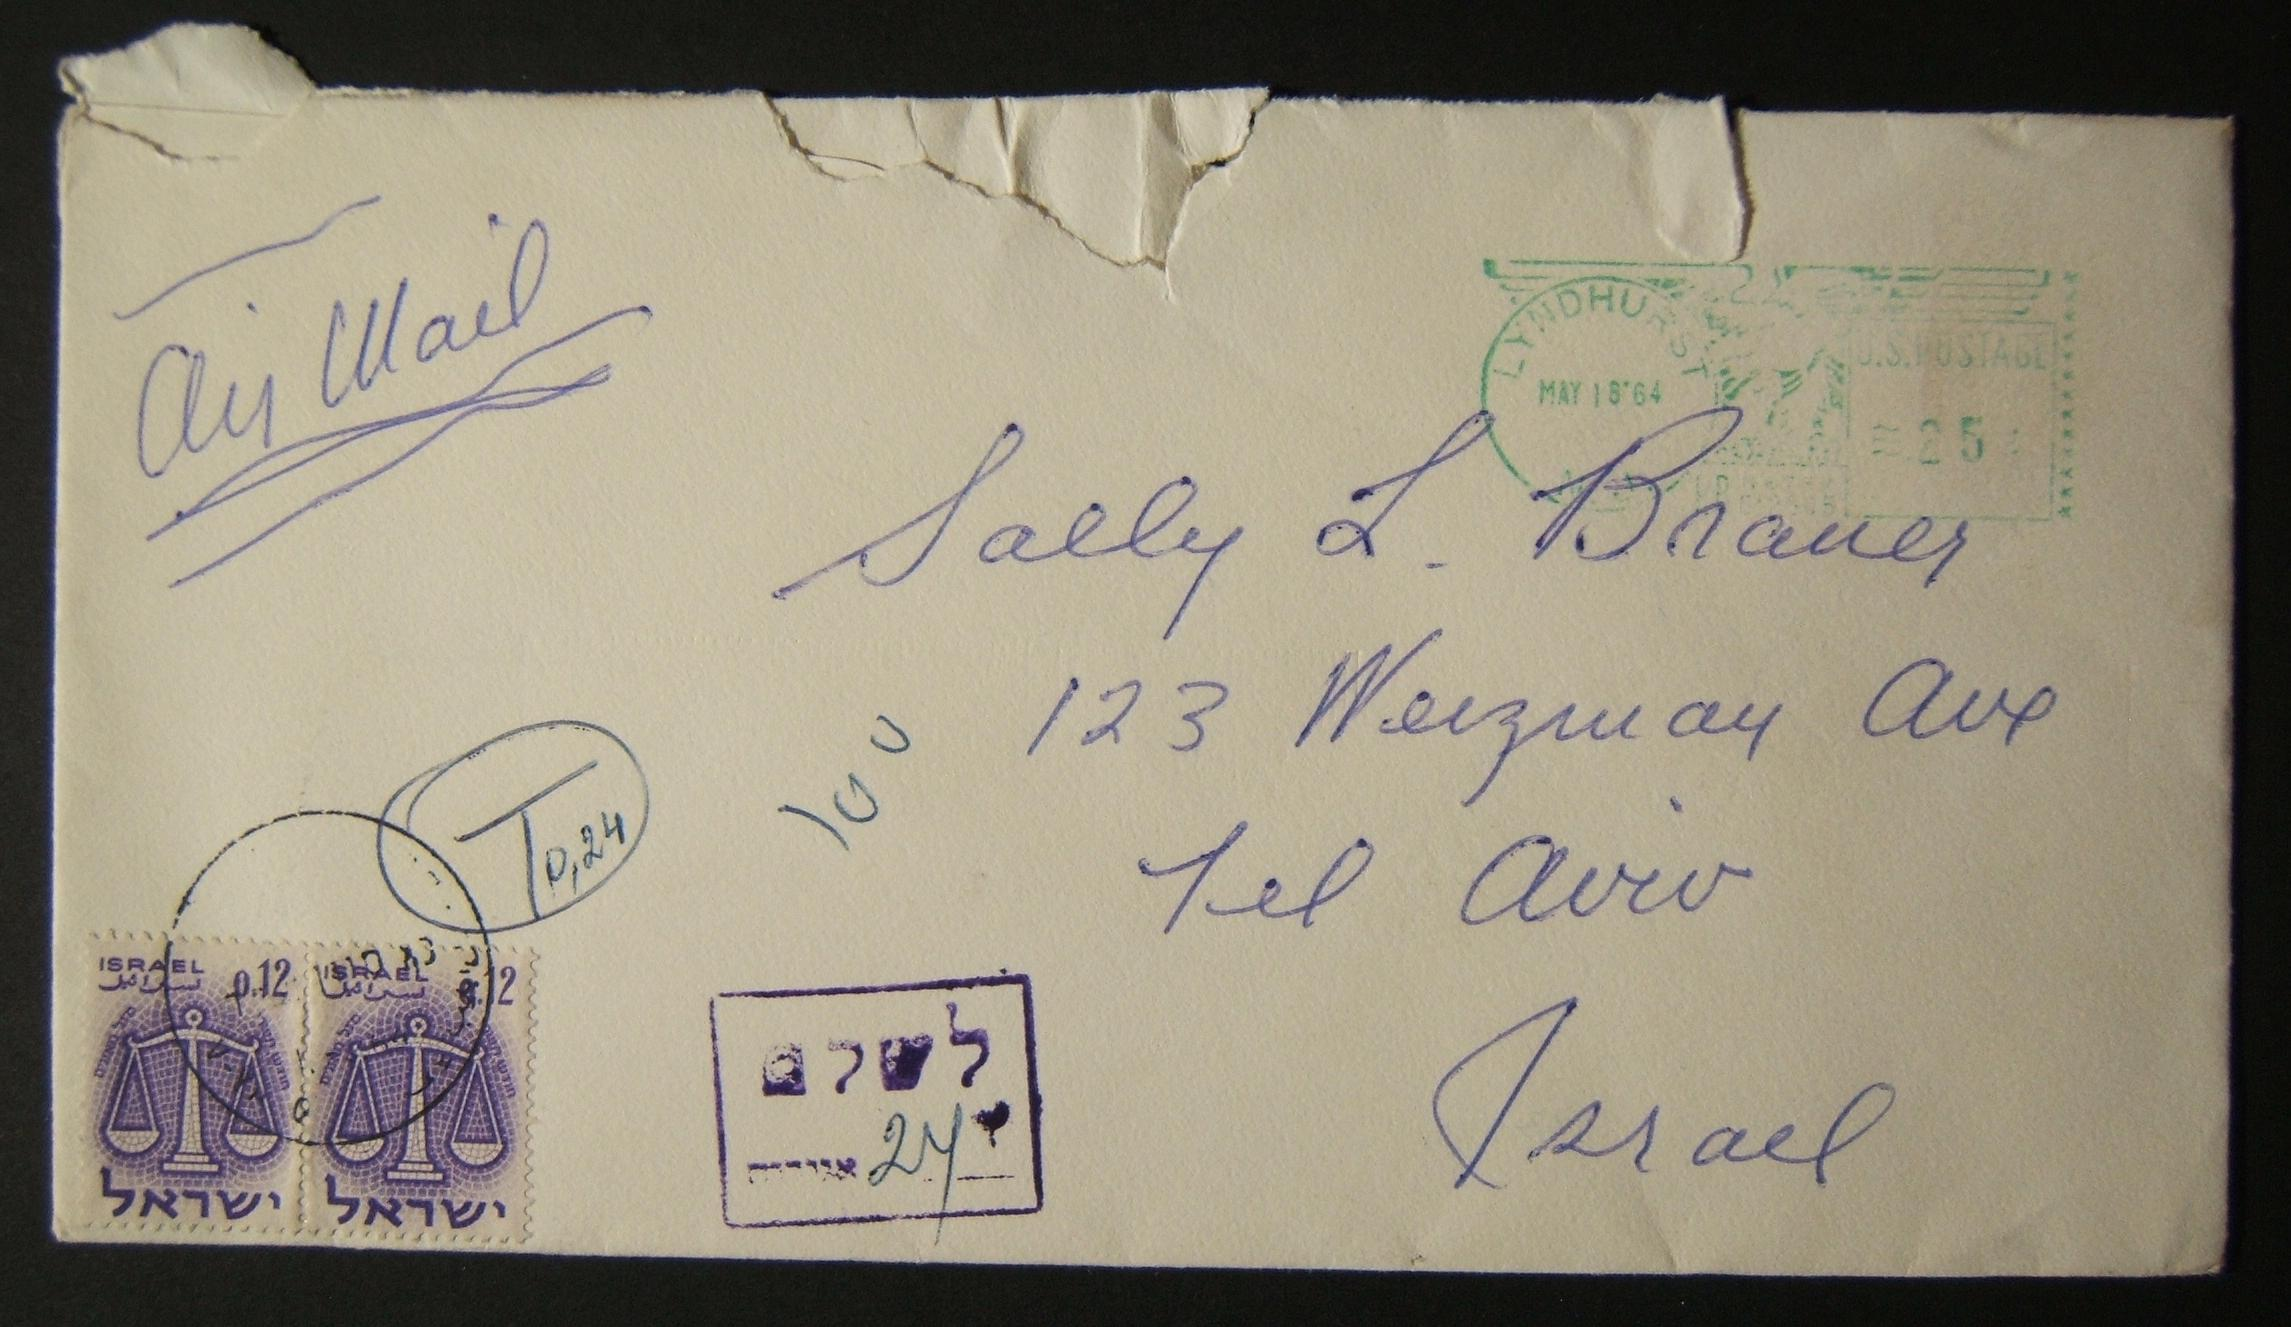 1964 incoming US taxed mail: MAY 18 '64 airmail cover ex LYNDHURST (return address NYC) to TLV underfranked at $0.25 and taxed 0.24L in Israel, paid 1-6-64 using pair 0.12L 1961 Zo